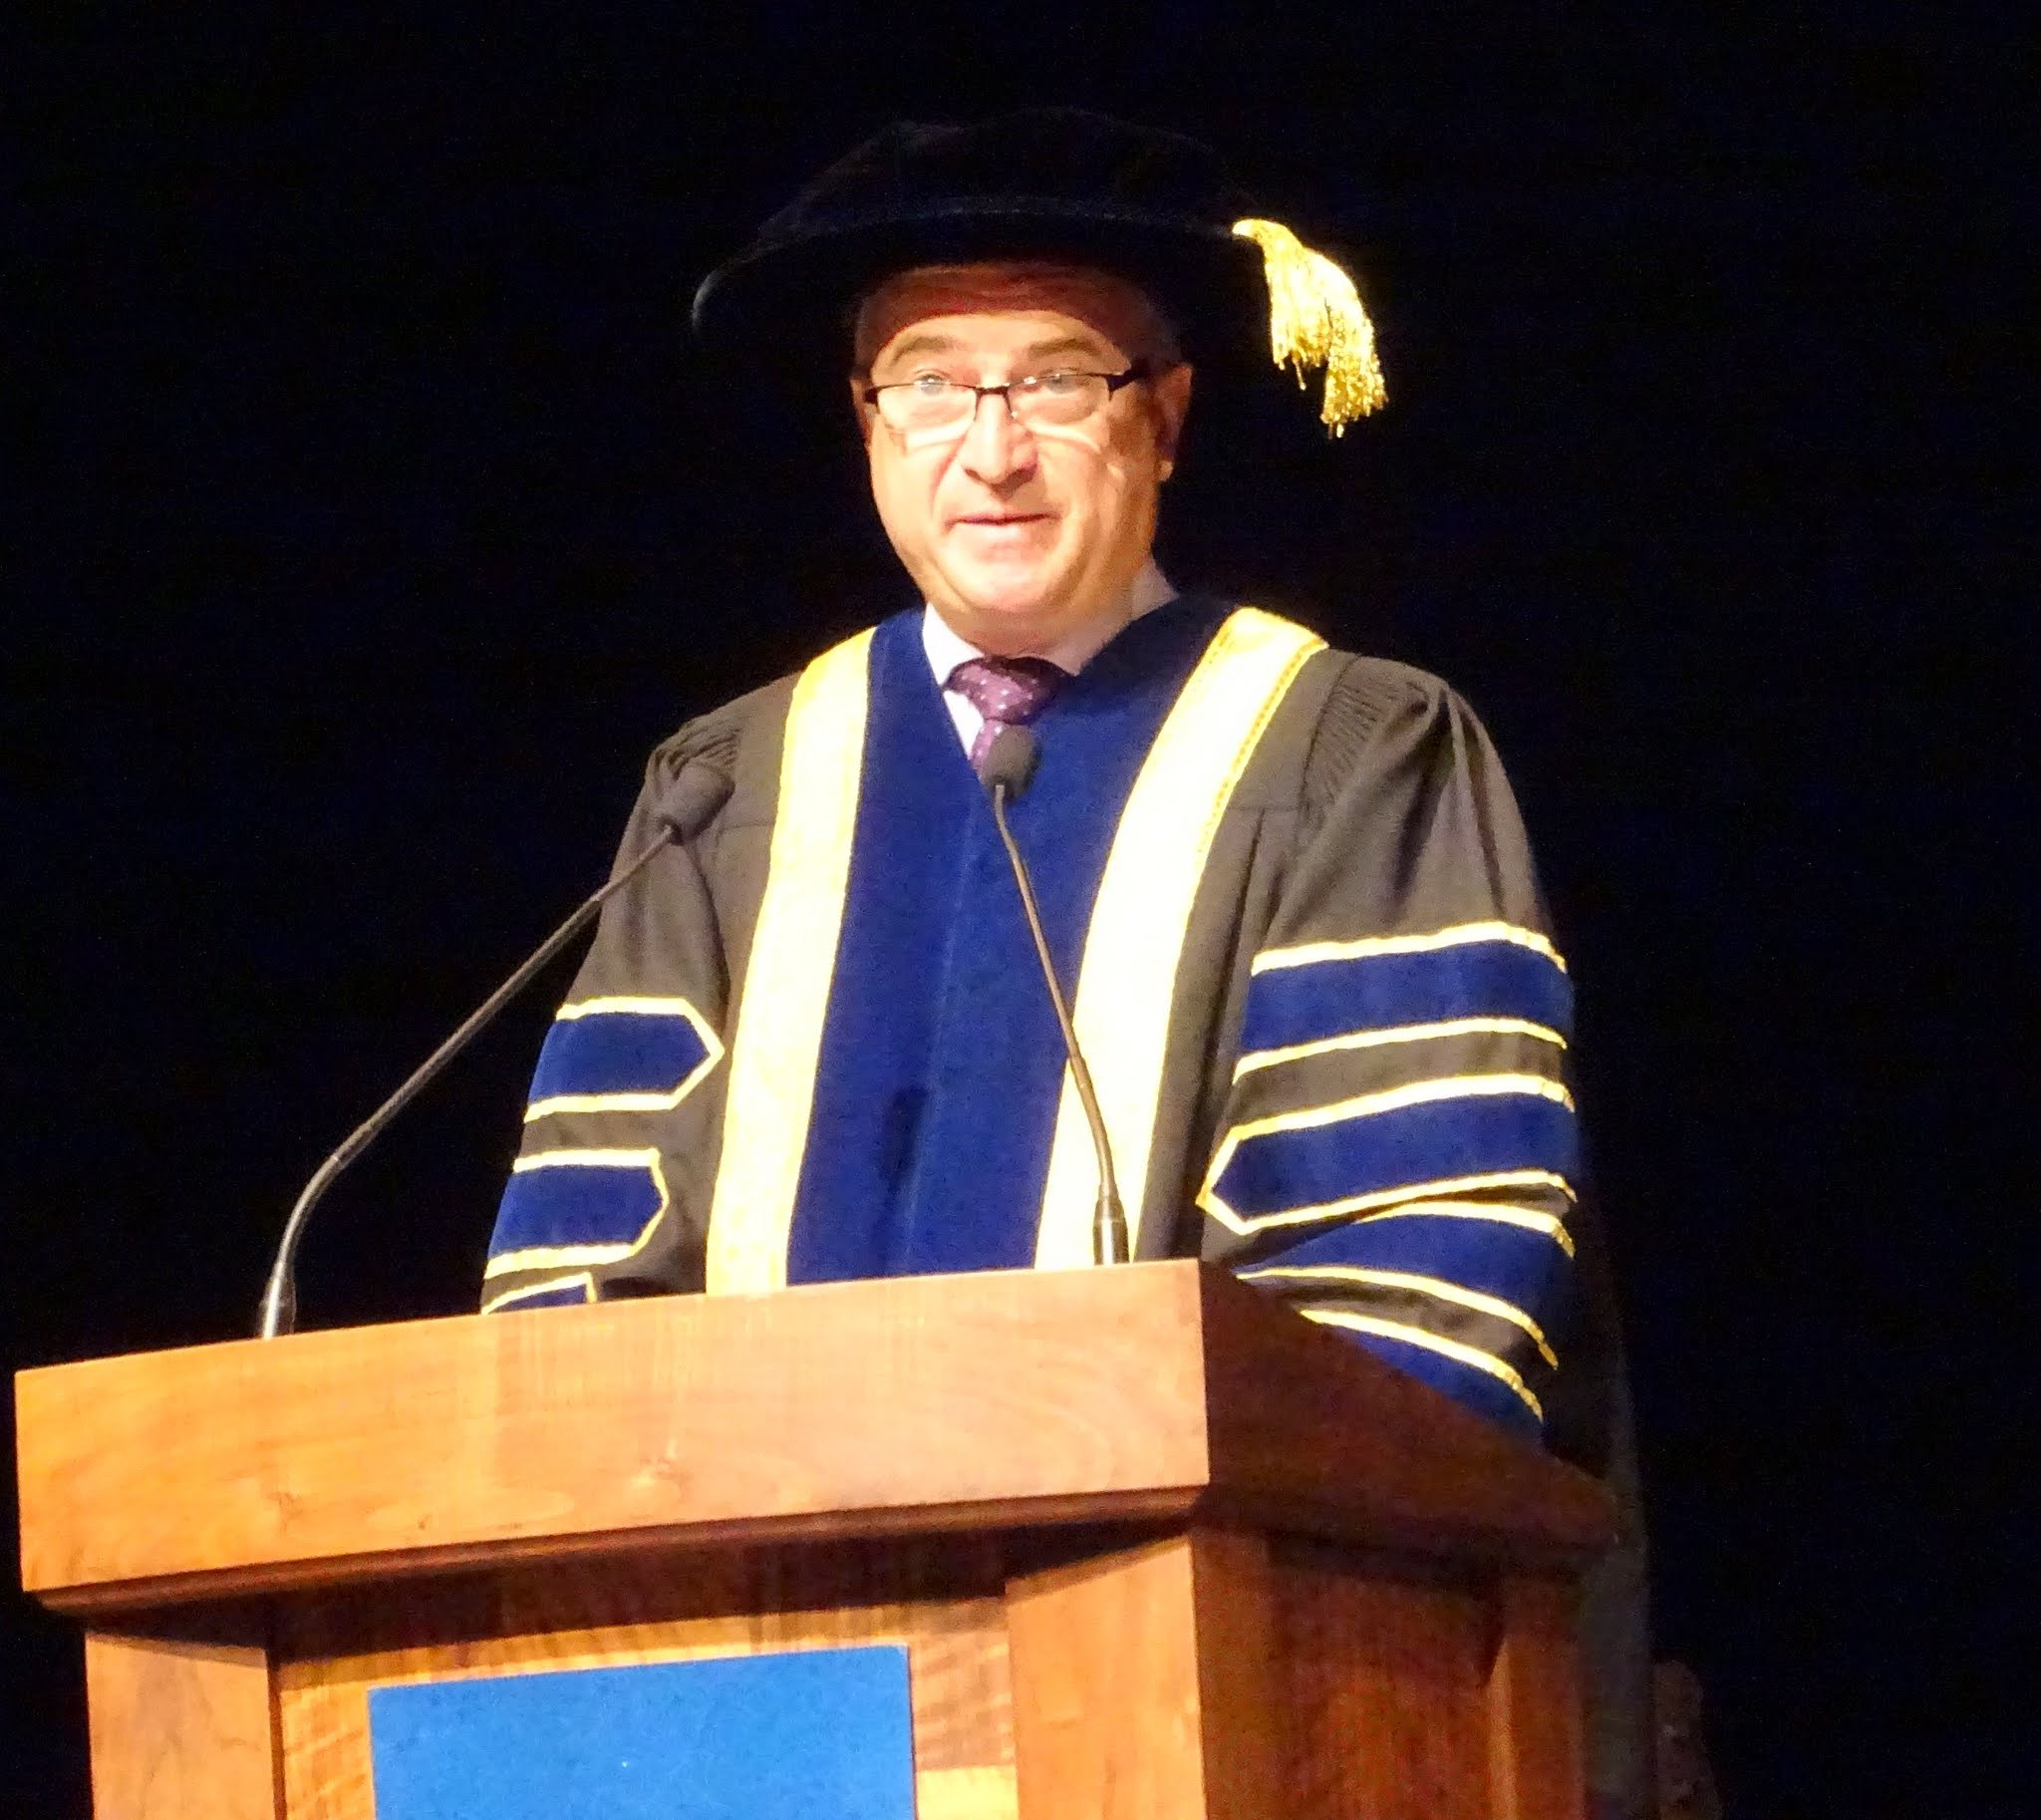 Introduction of Chancellor by Dr. Jeff Zabudsky